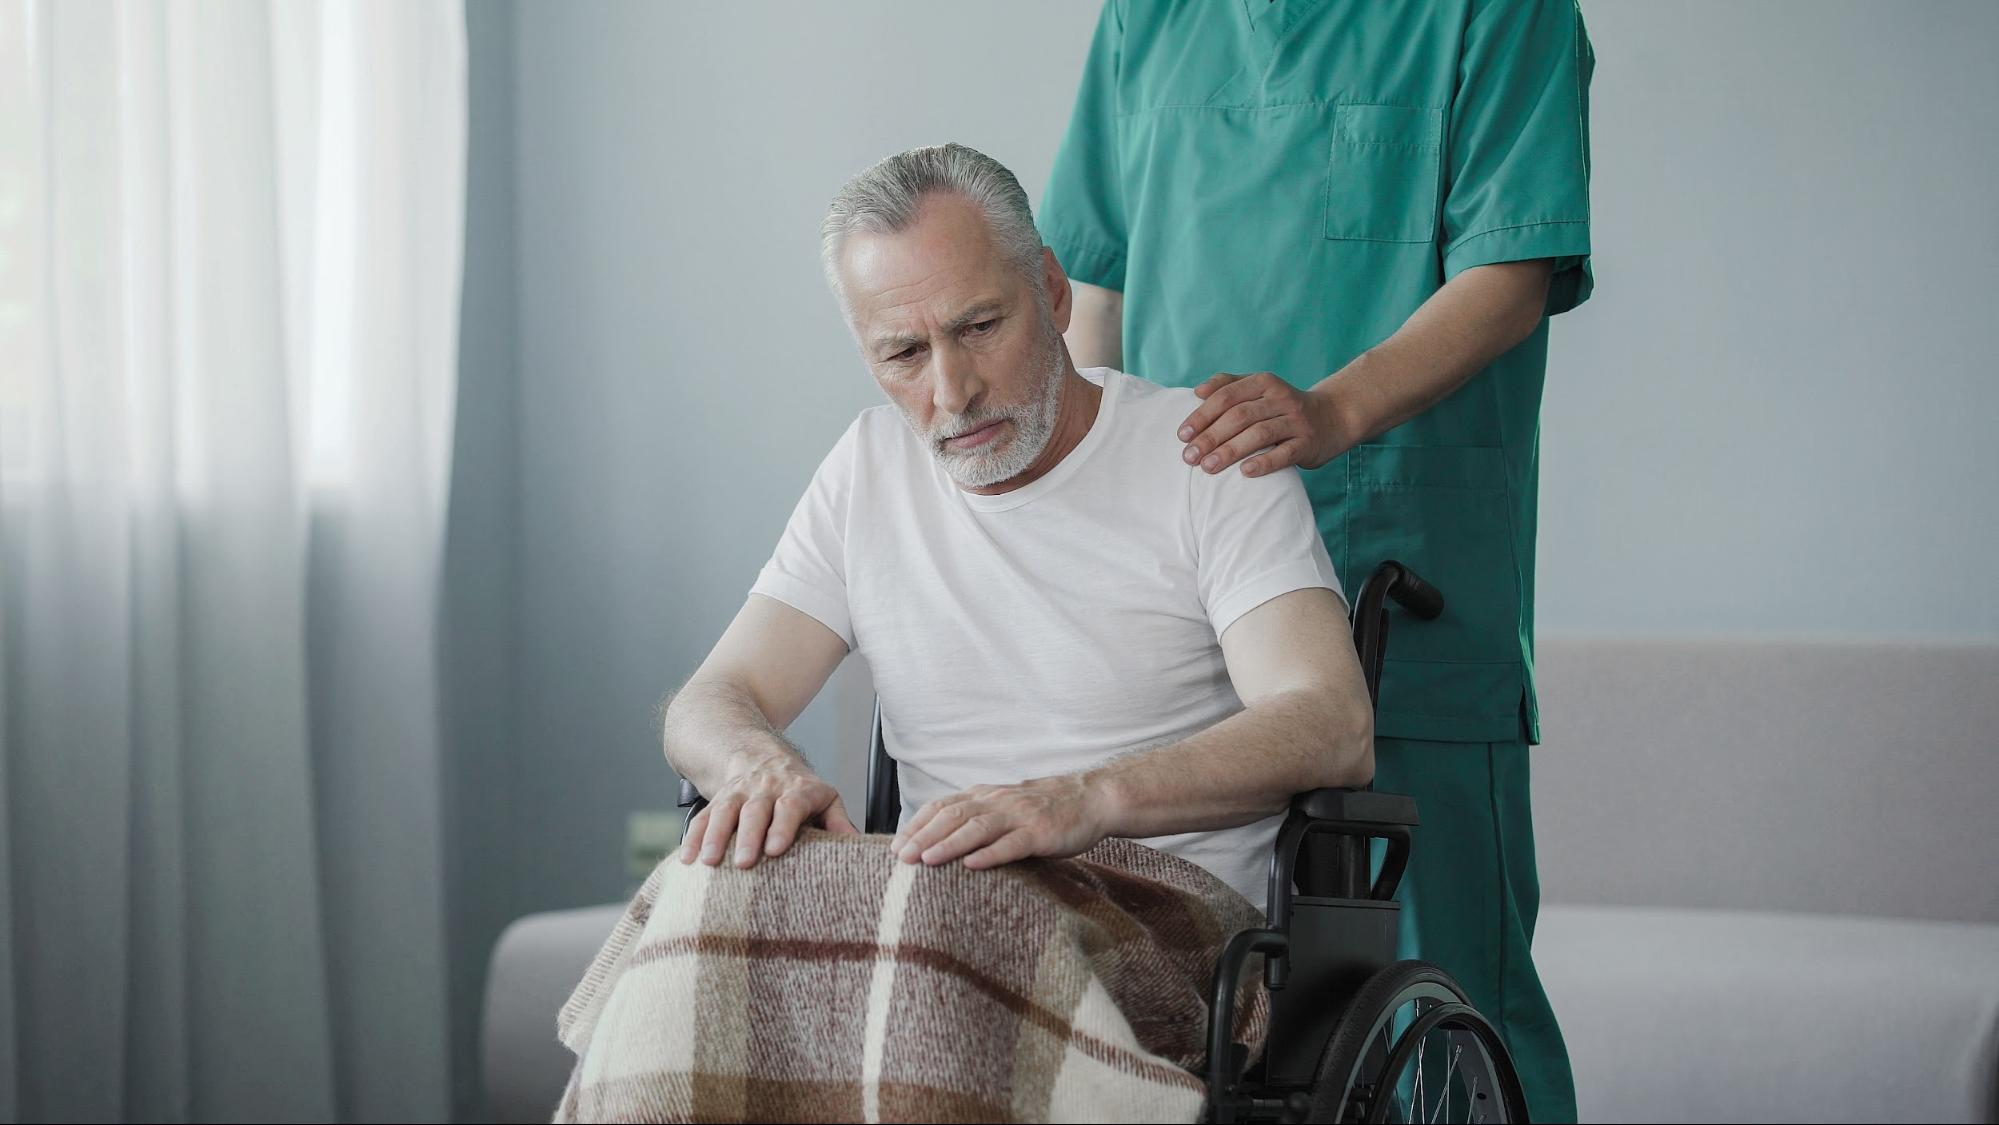 Injured elderly man in a wheelchair being assisted by his nurse